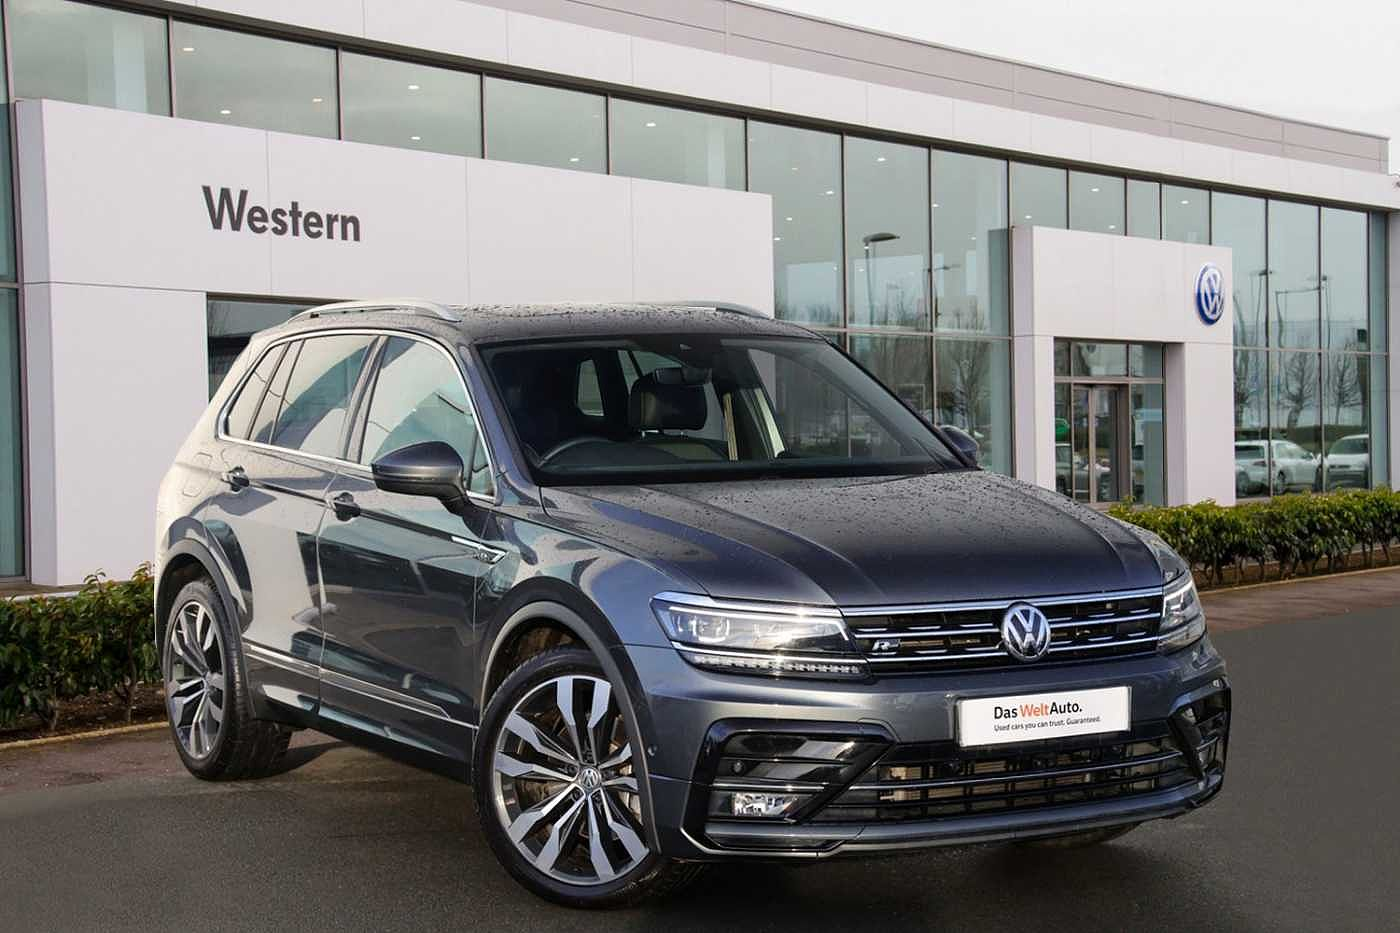 2019 Tiguan 2.0 TDI 190PS R-Line Tech SCR 4Motion DSG for Sale in Edinburgh